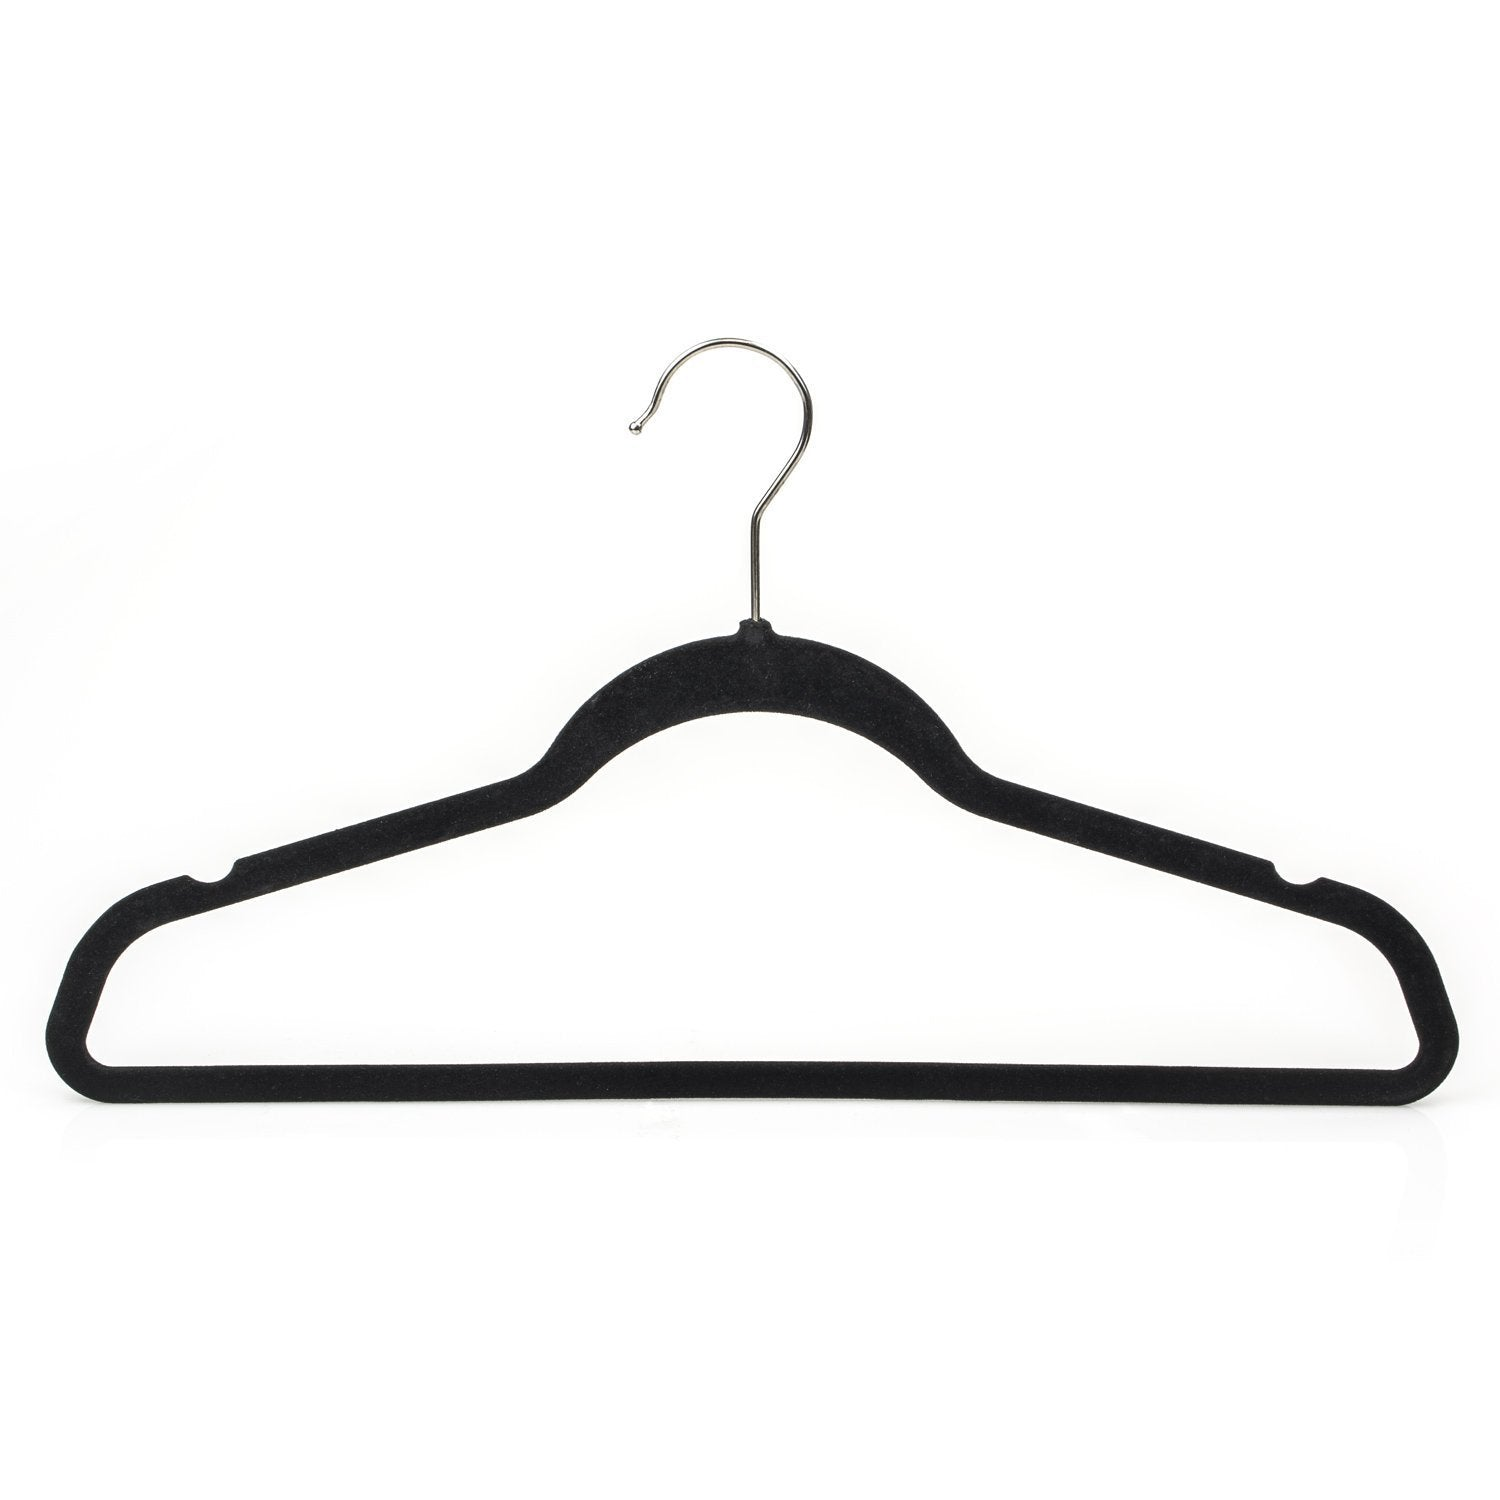 Budget michael graves design premium ultra thin non slip velvet clothing hangers flocked durable closet space saving chrome hook for garments suits dresses pants shirts coats 50 pack black